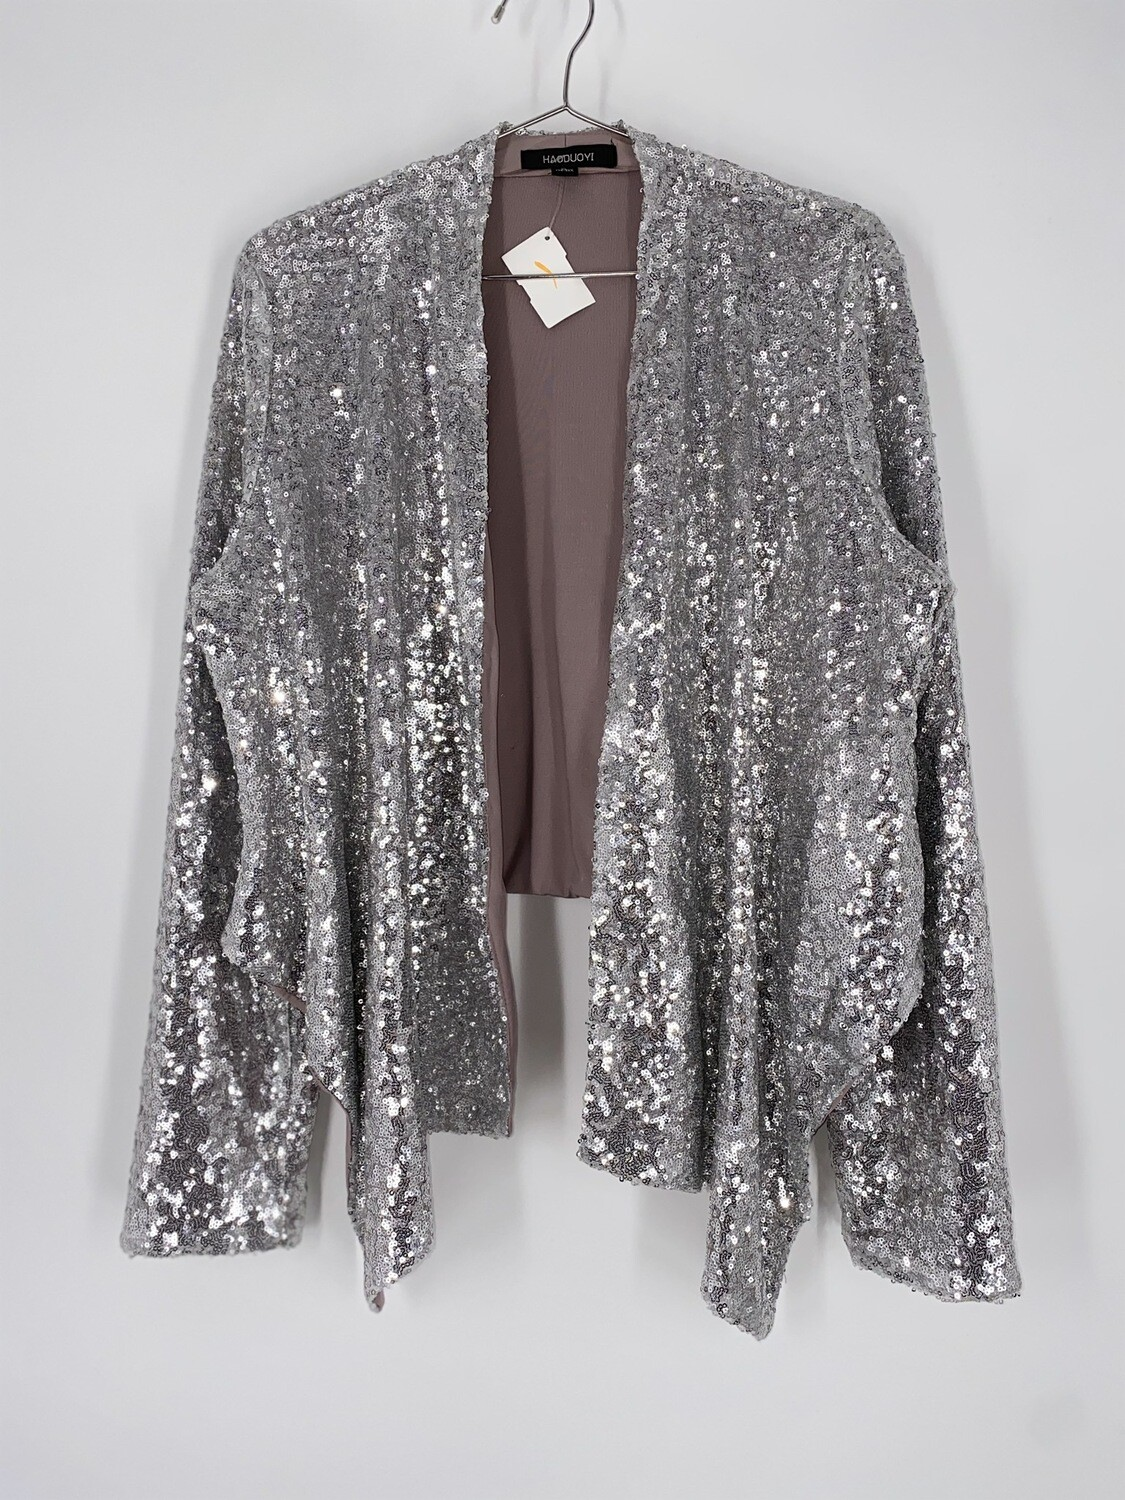 HAODUOYI Silver Sequins Long Sleeve Top Size L